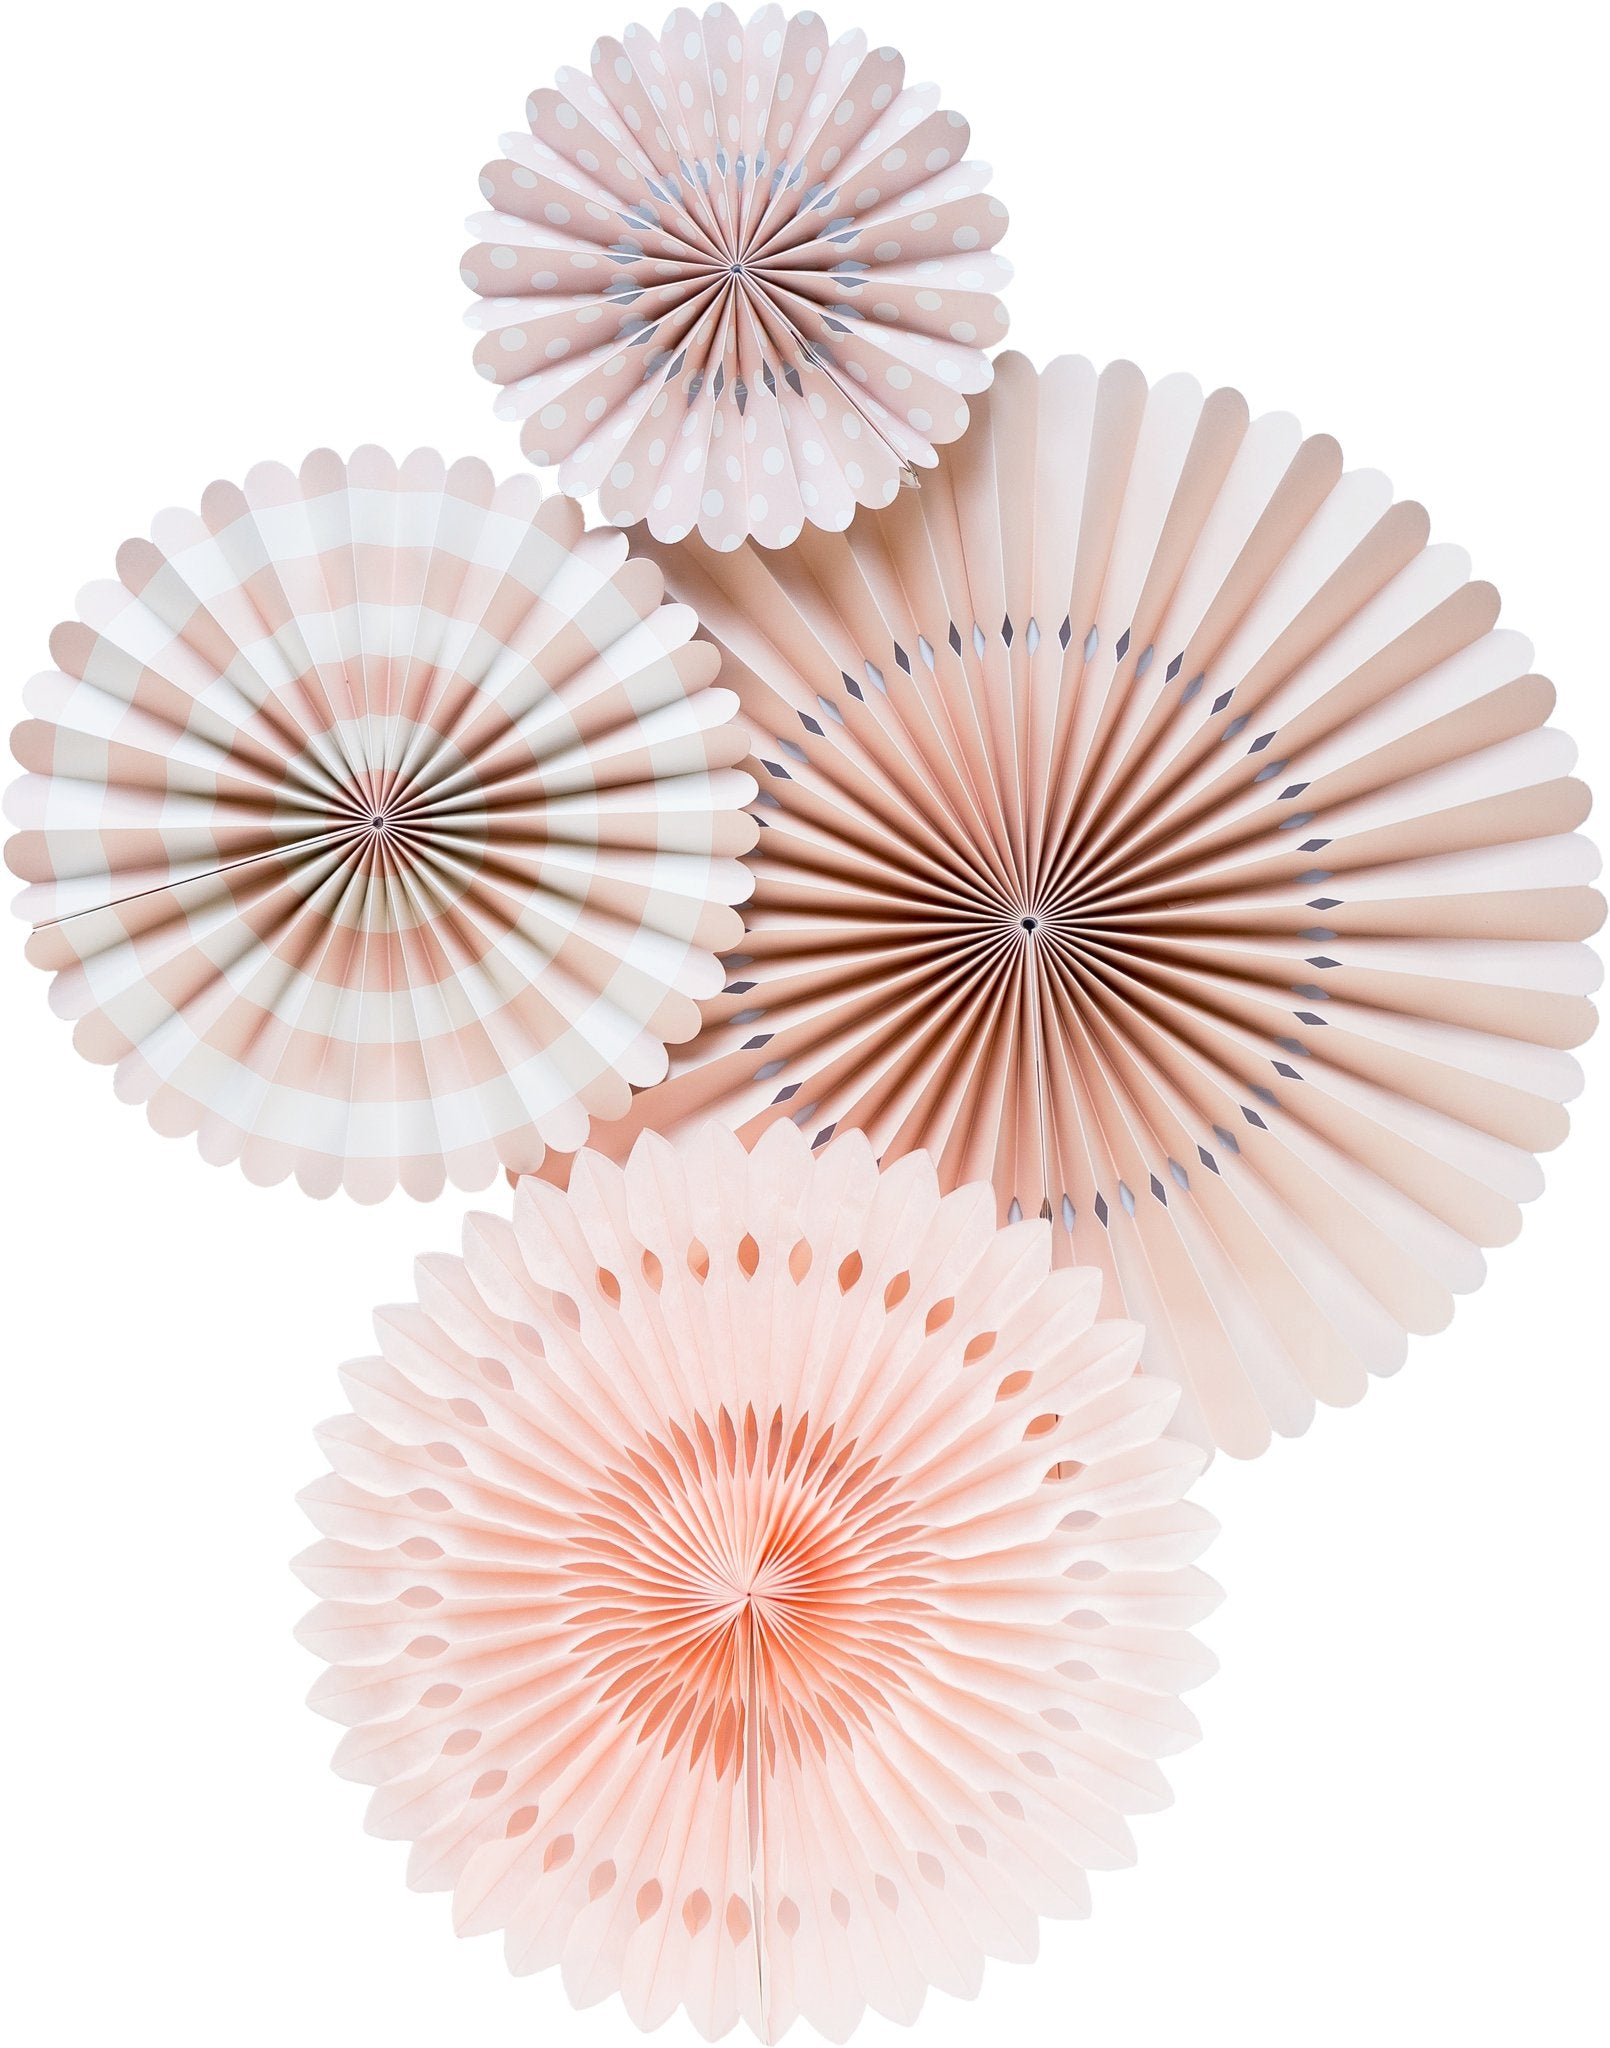 Blush Pink Fan Set, Partyware, My Mind's Eye - 3LittlePicks